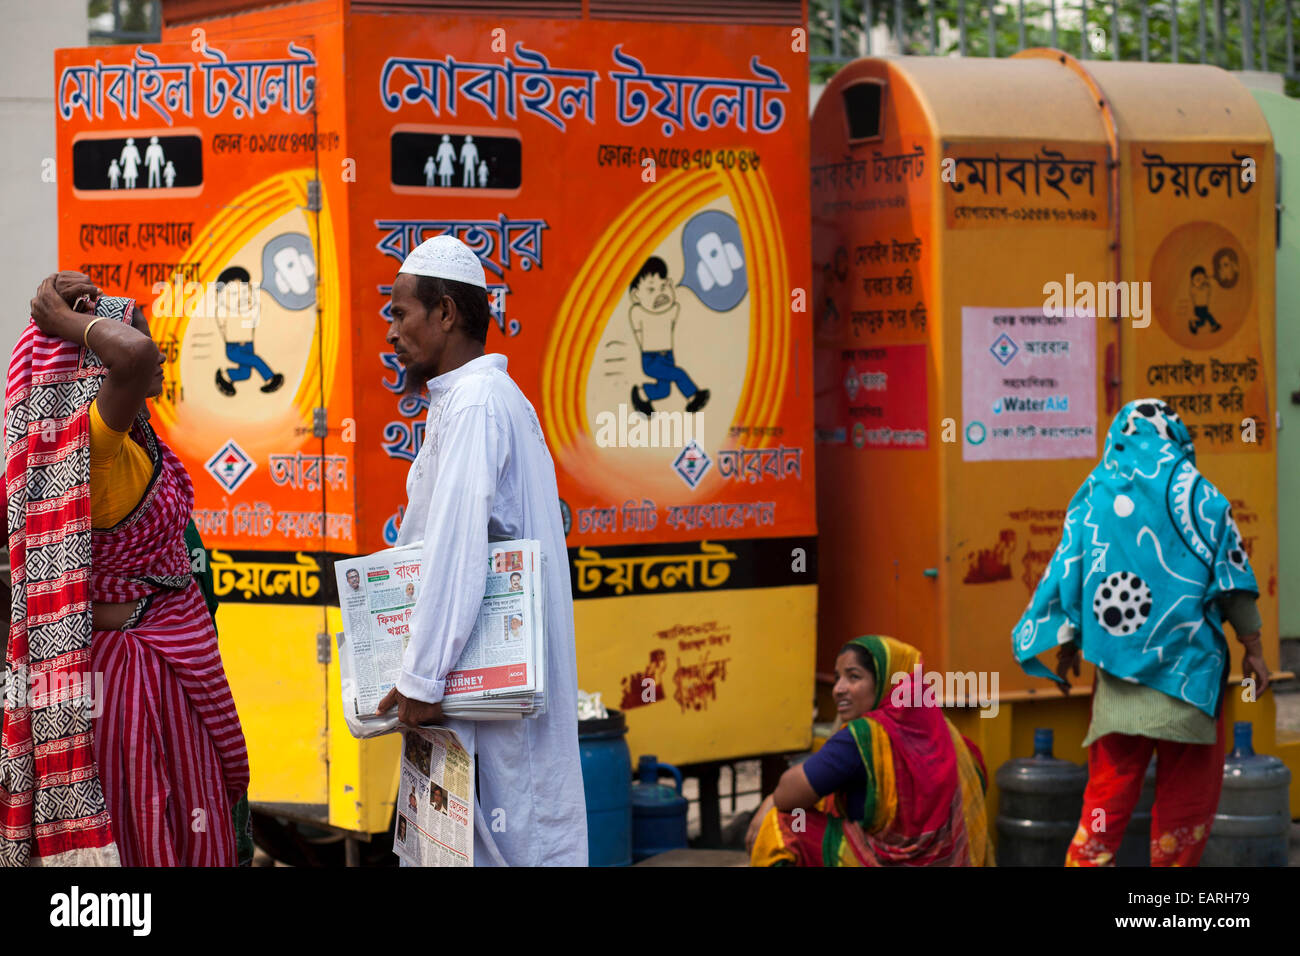 A paper saller making conversation with toilet cleaner infront of Itinerant Mobile toilet beside street in Dhaka. - Stock Image